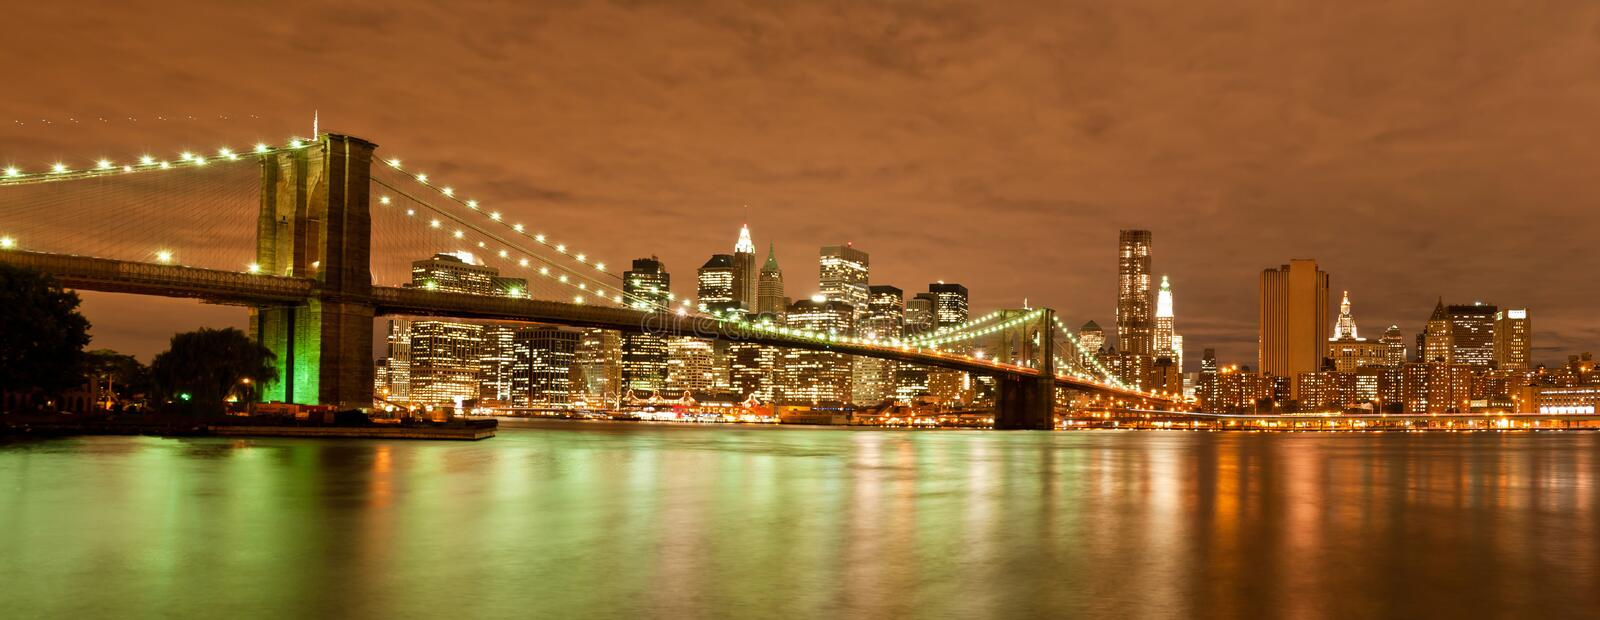 Panorama of Manhattan and Brooklyn Bridge. Night view of the Brooklyn Bridge from Dumbo in Brooklyn with the skyline of New York Behind royalty free stock images